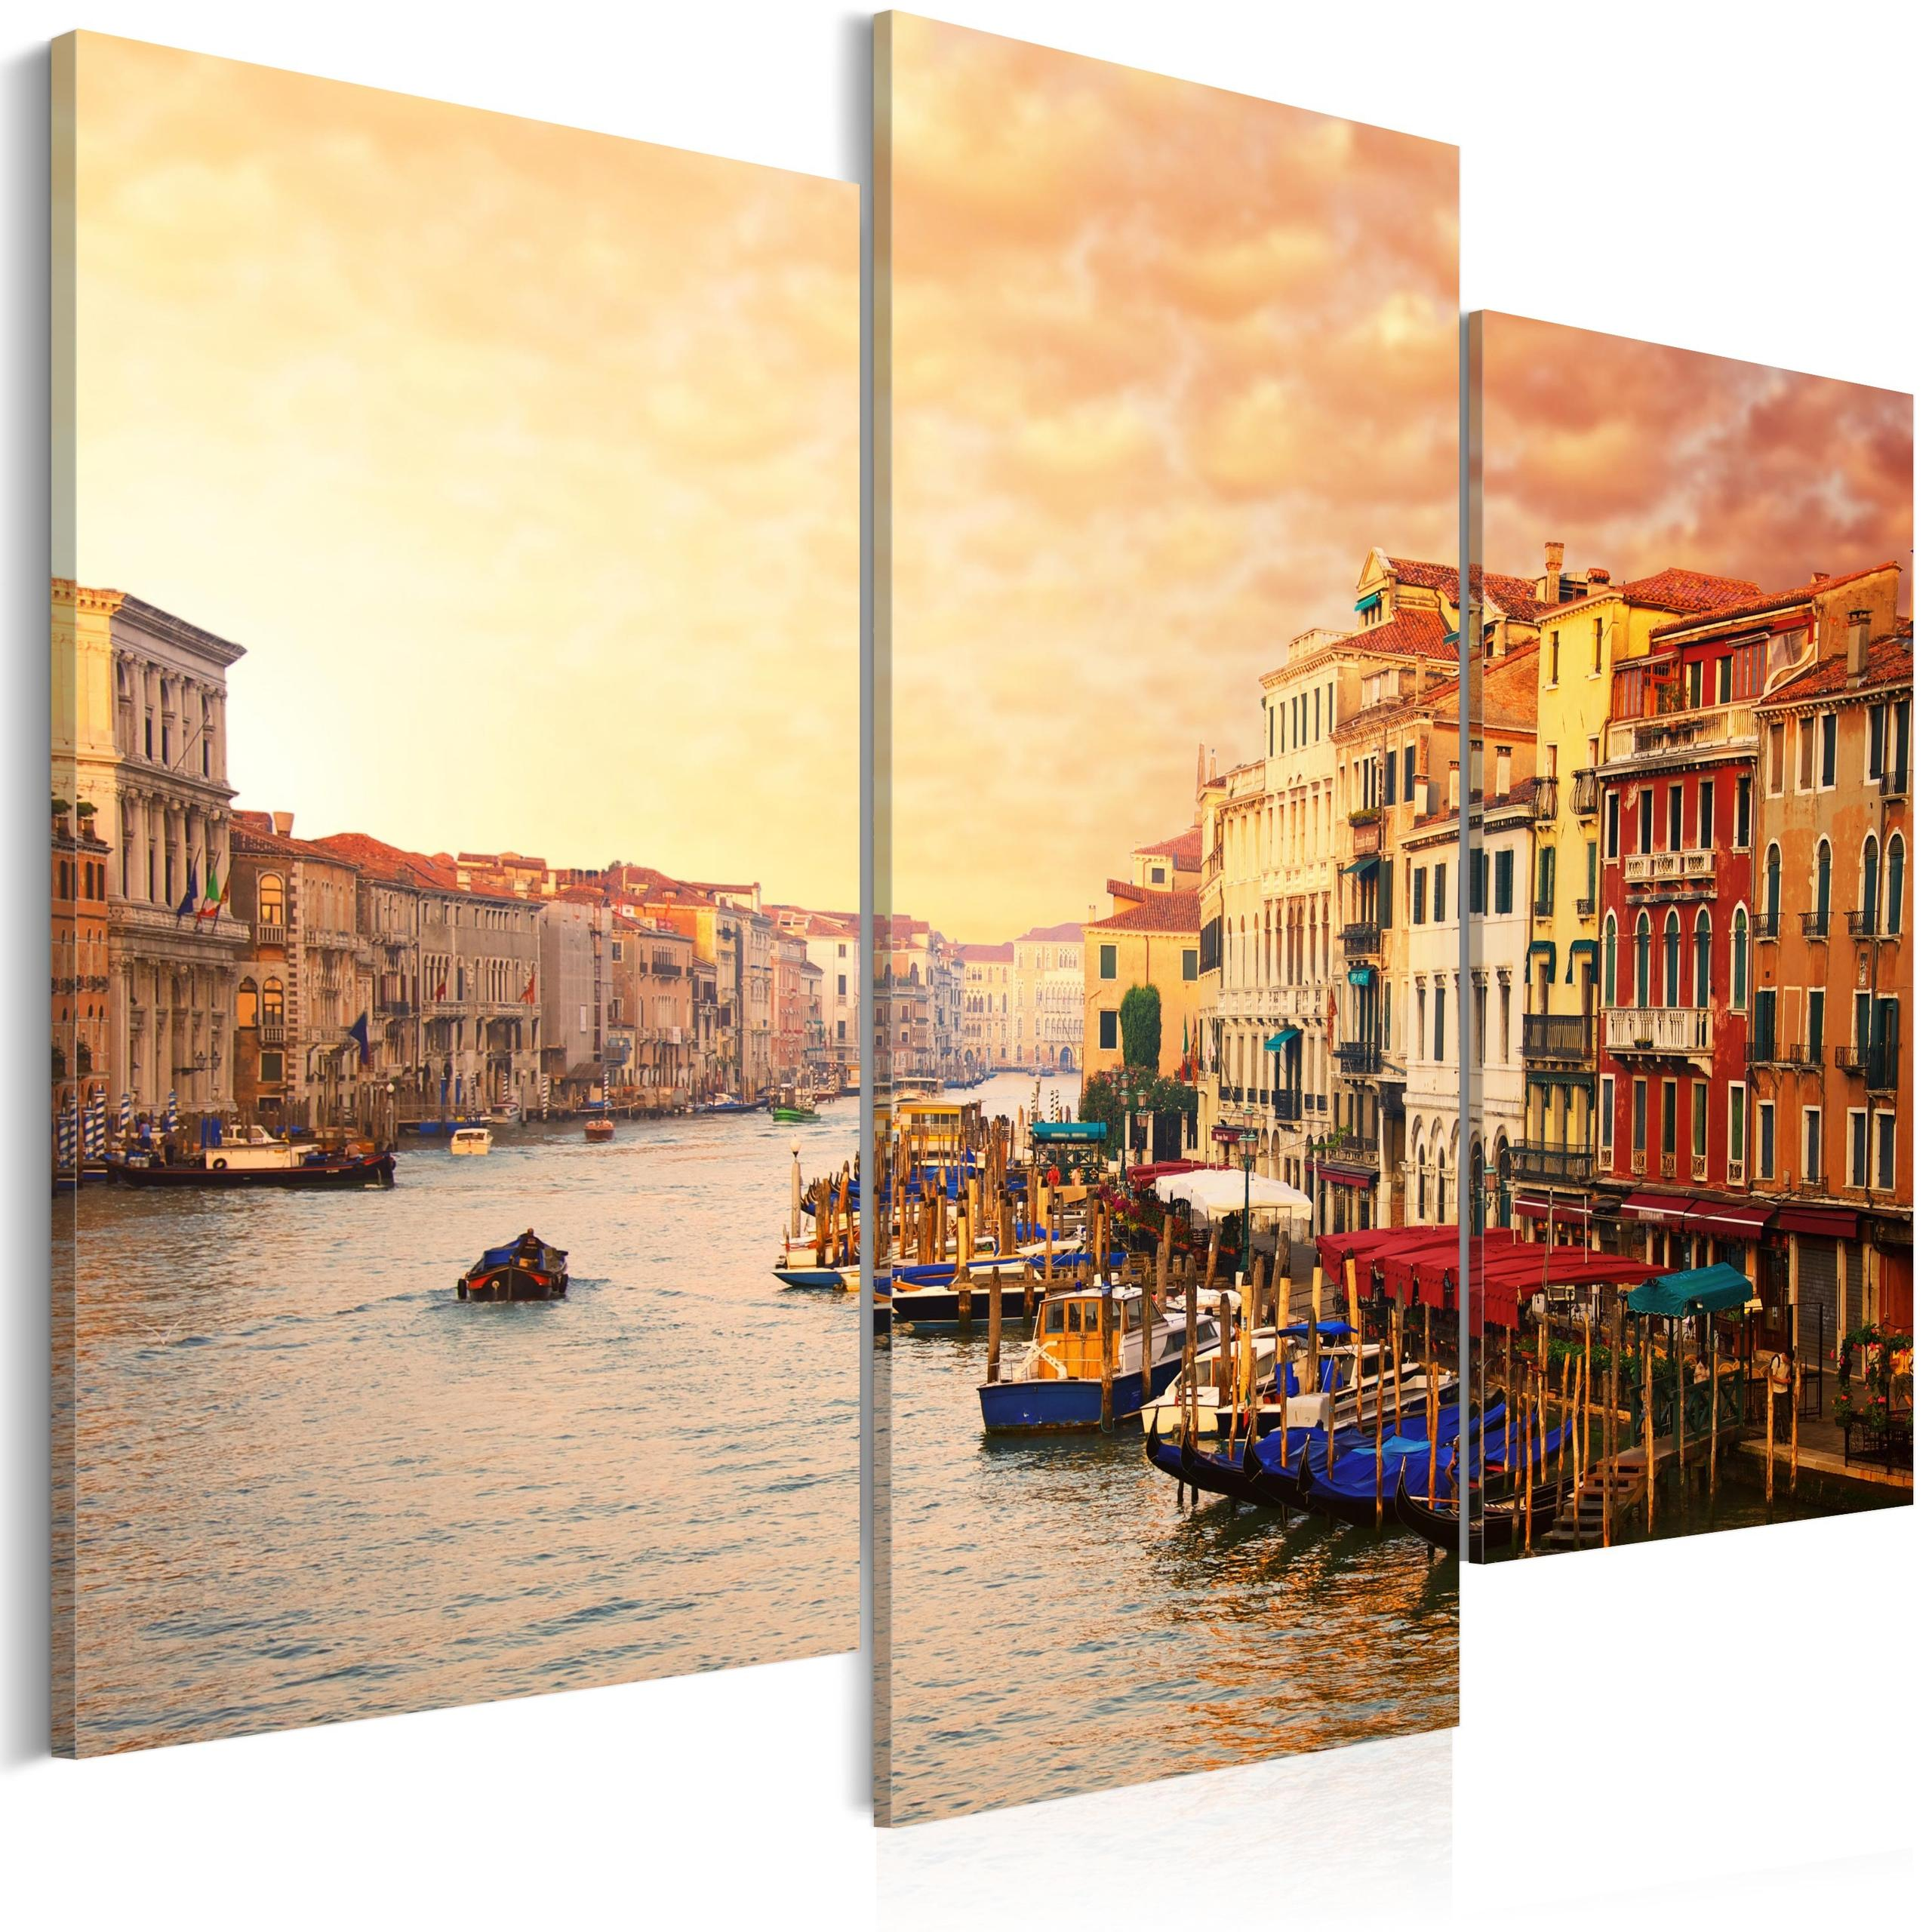 Quadro - Splendore Di Venezia Erroi